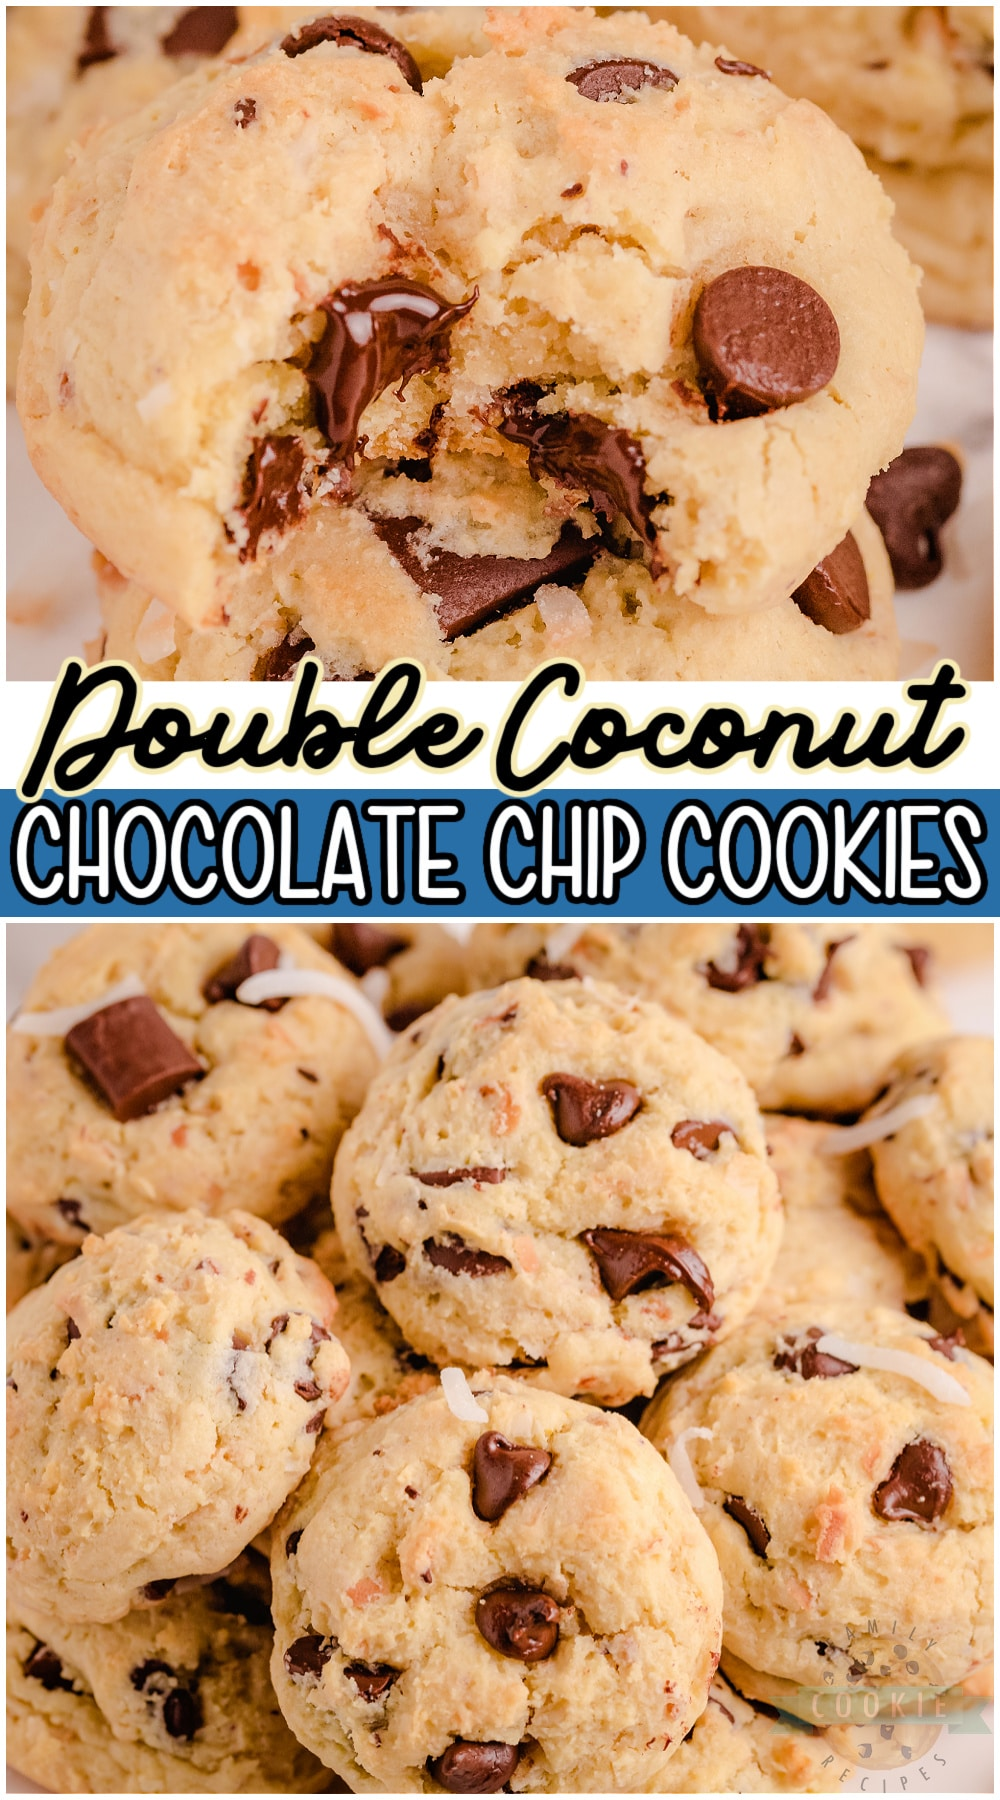 Coconut chocolate chip cookies packed with chocolate chips and double the coconut! Soft & chewy pudding chocolate chip cookies with coconut perfect for coconut lovers! #cookies #chocolatechip #coconut #pudding #baking #easyrecipe from FAMILY COOKIE RECIPES via @buttergirls